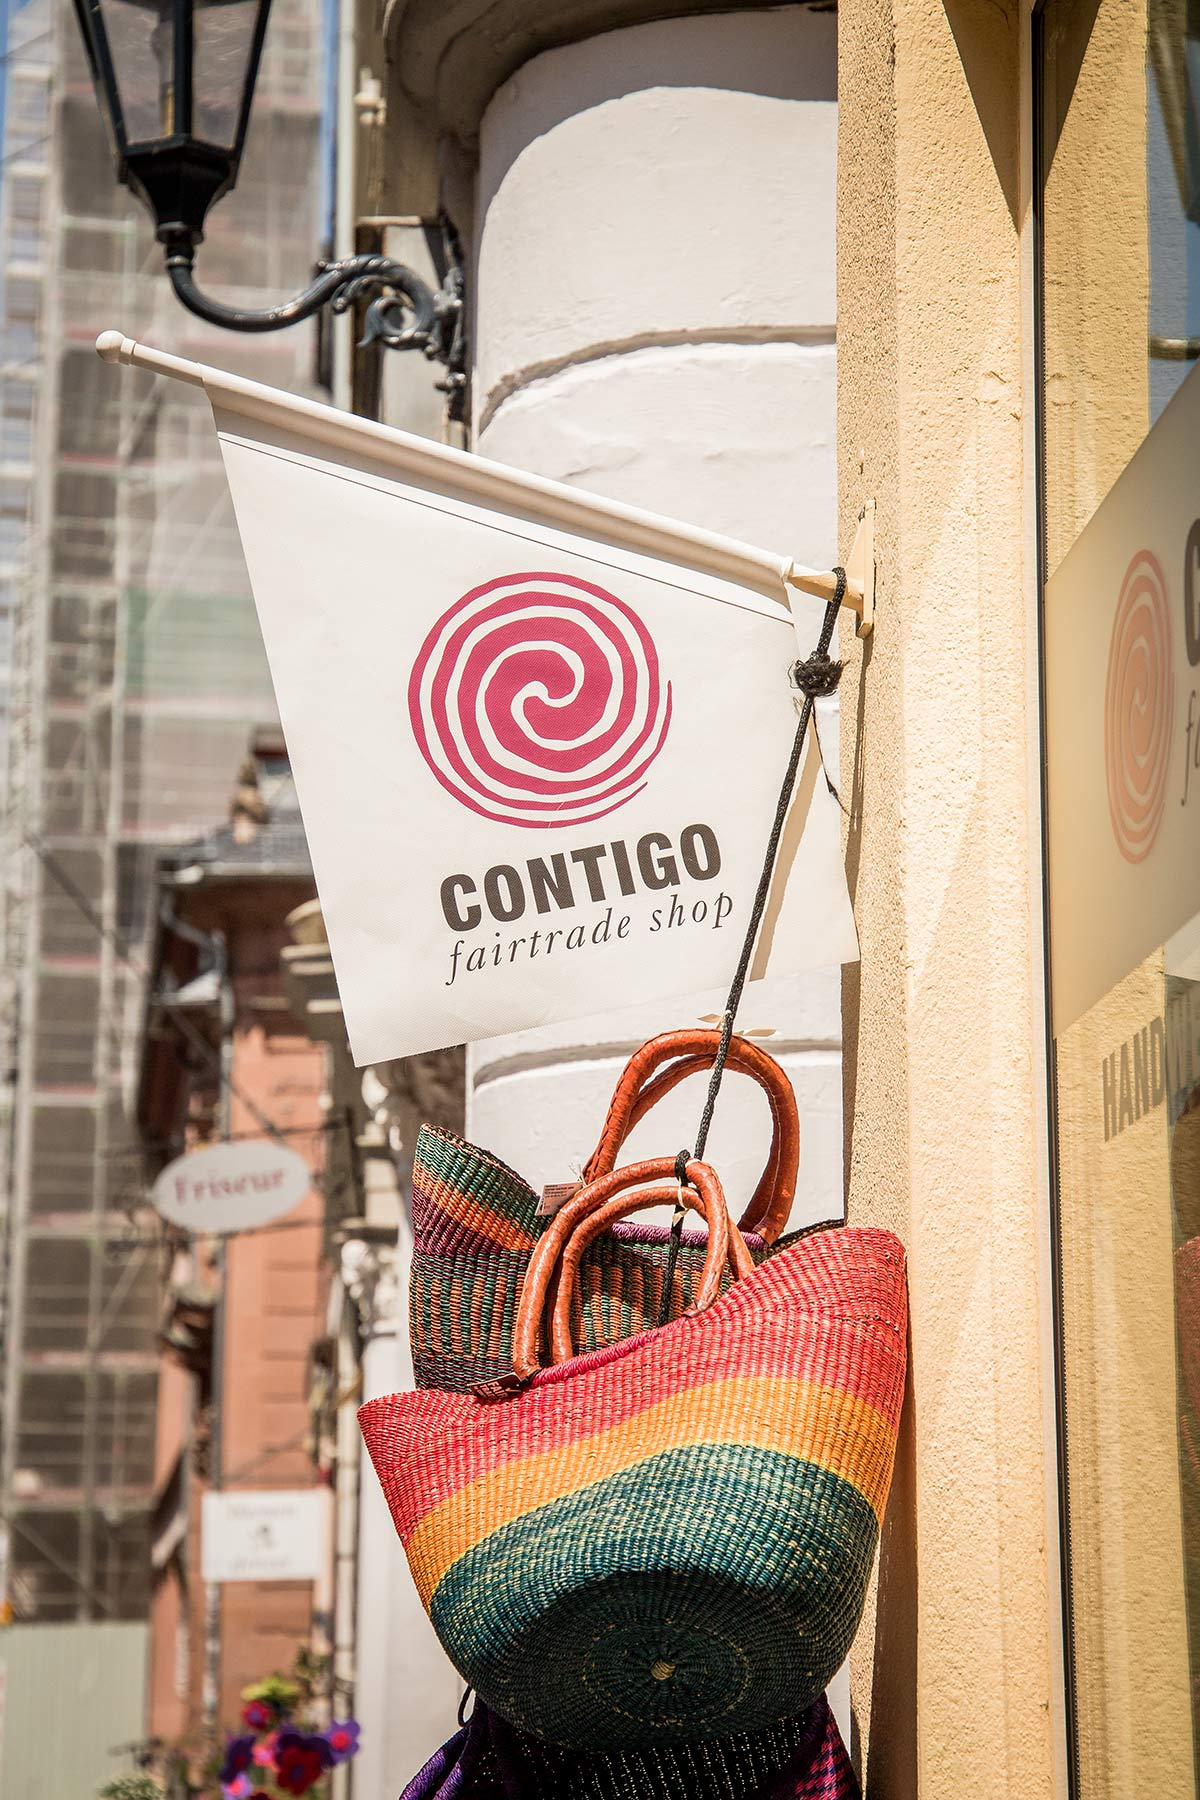 Contigo Fair Trade Shop in Mainz